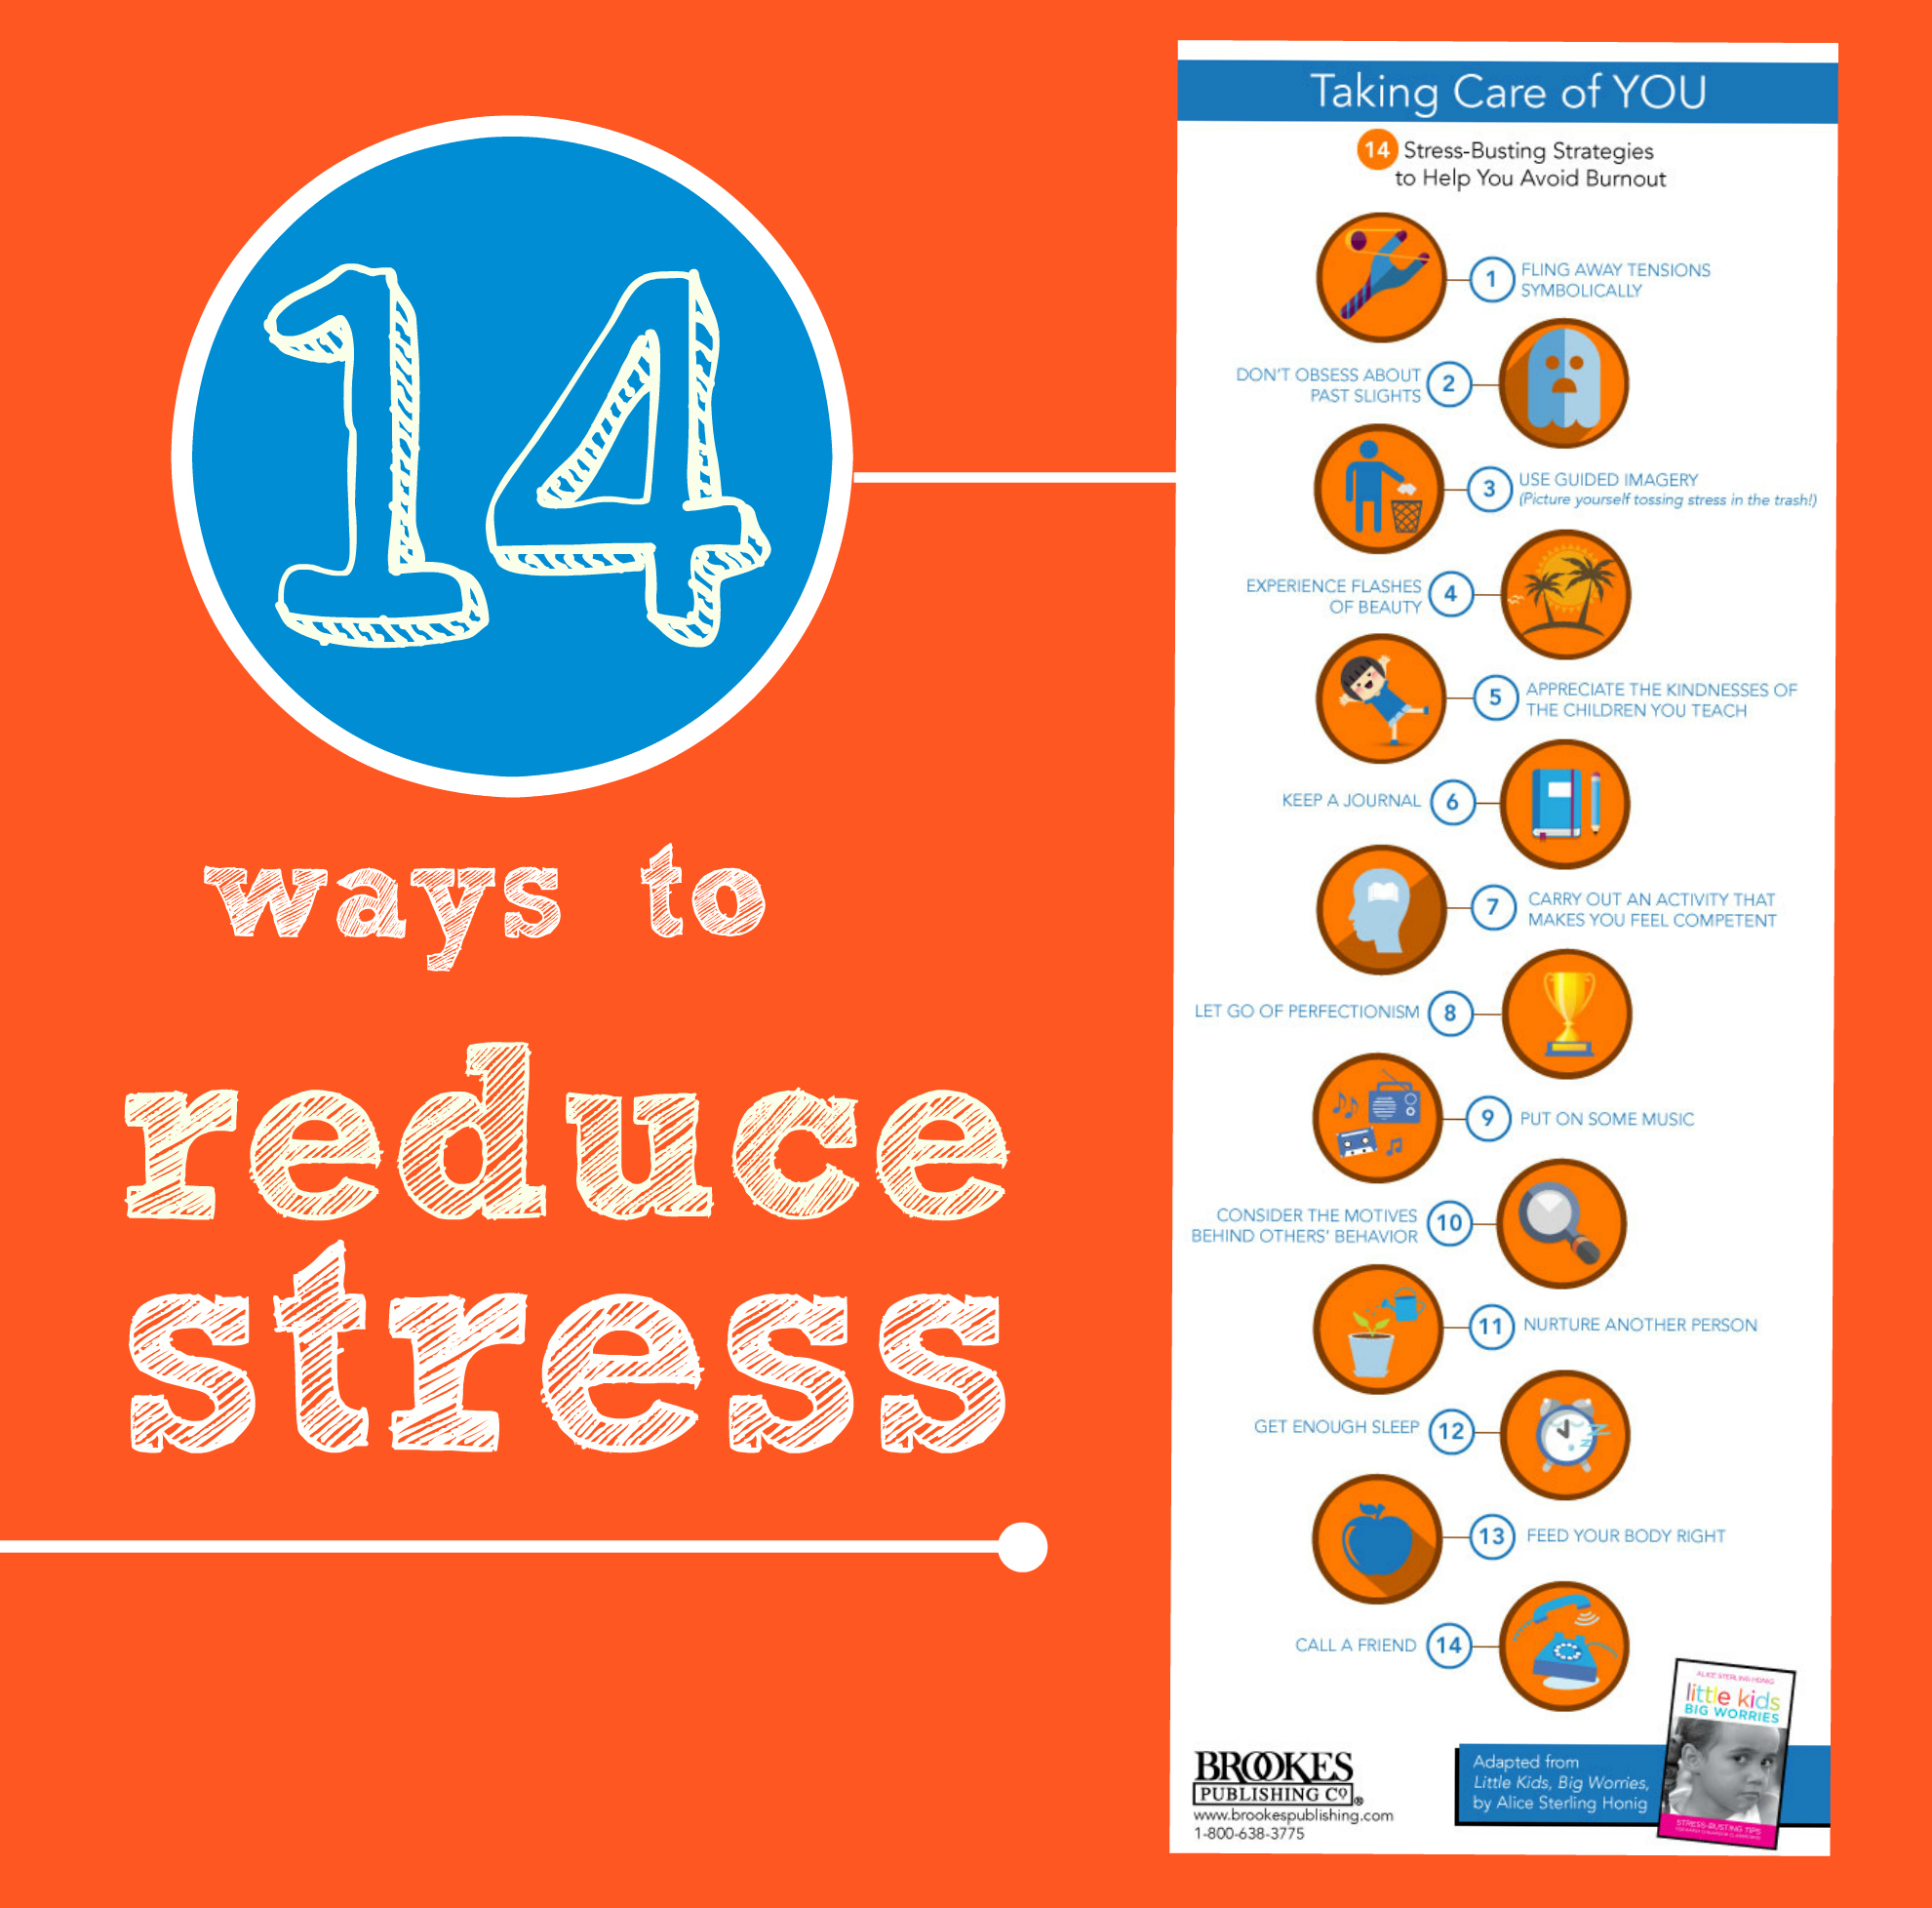 14 ways to reduce stress